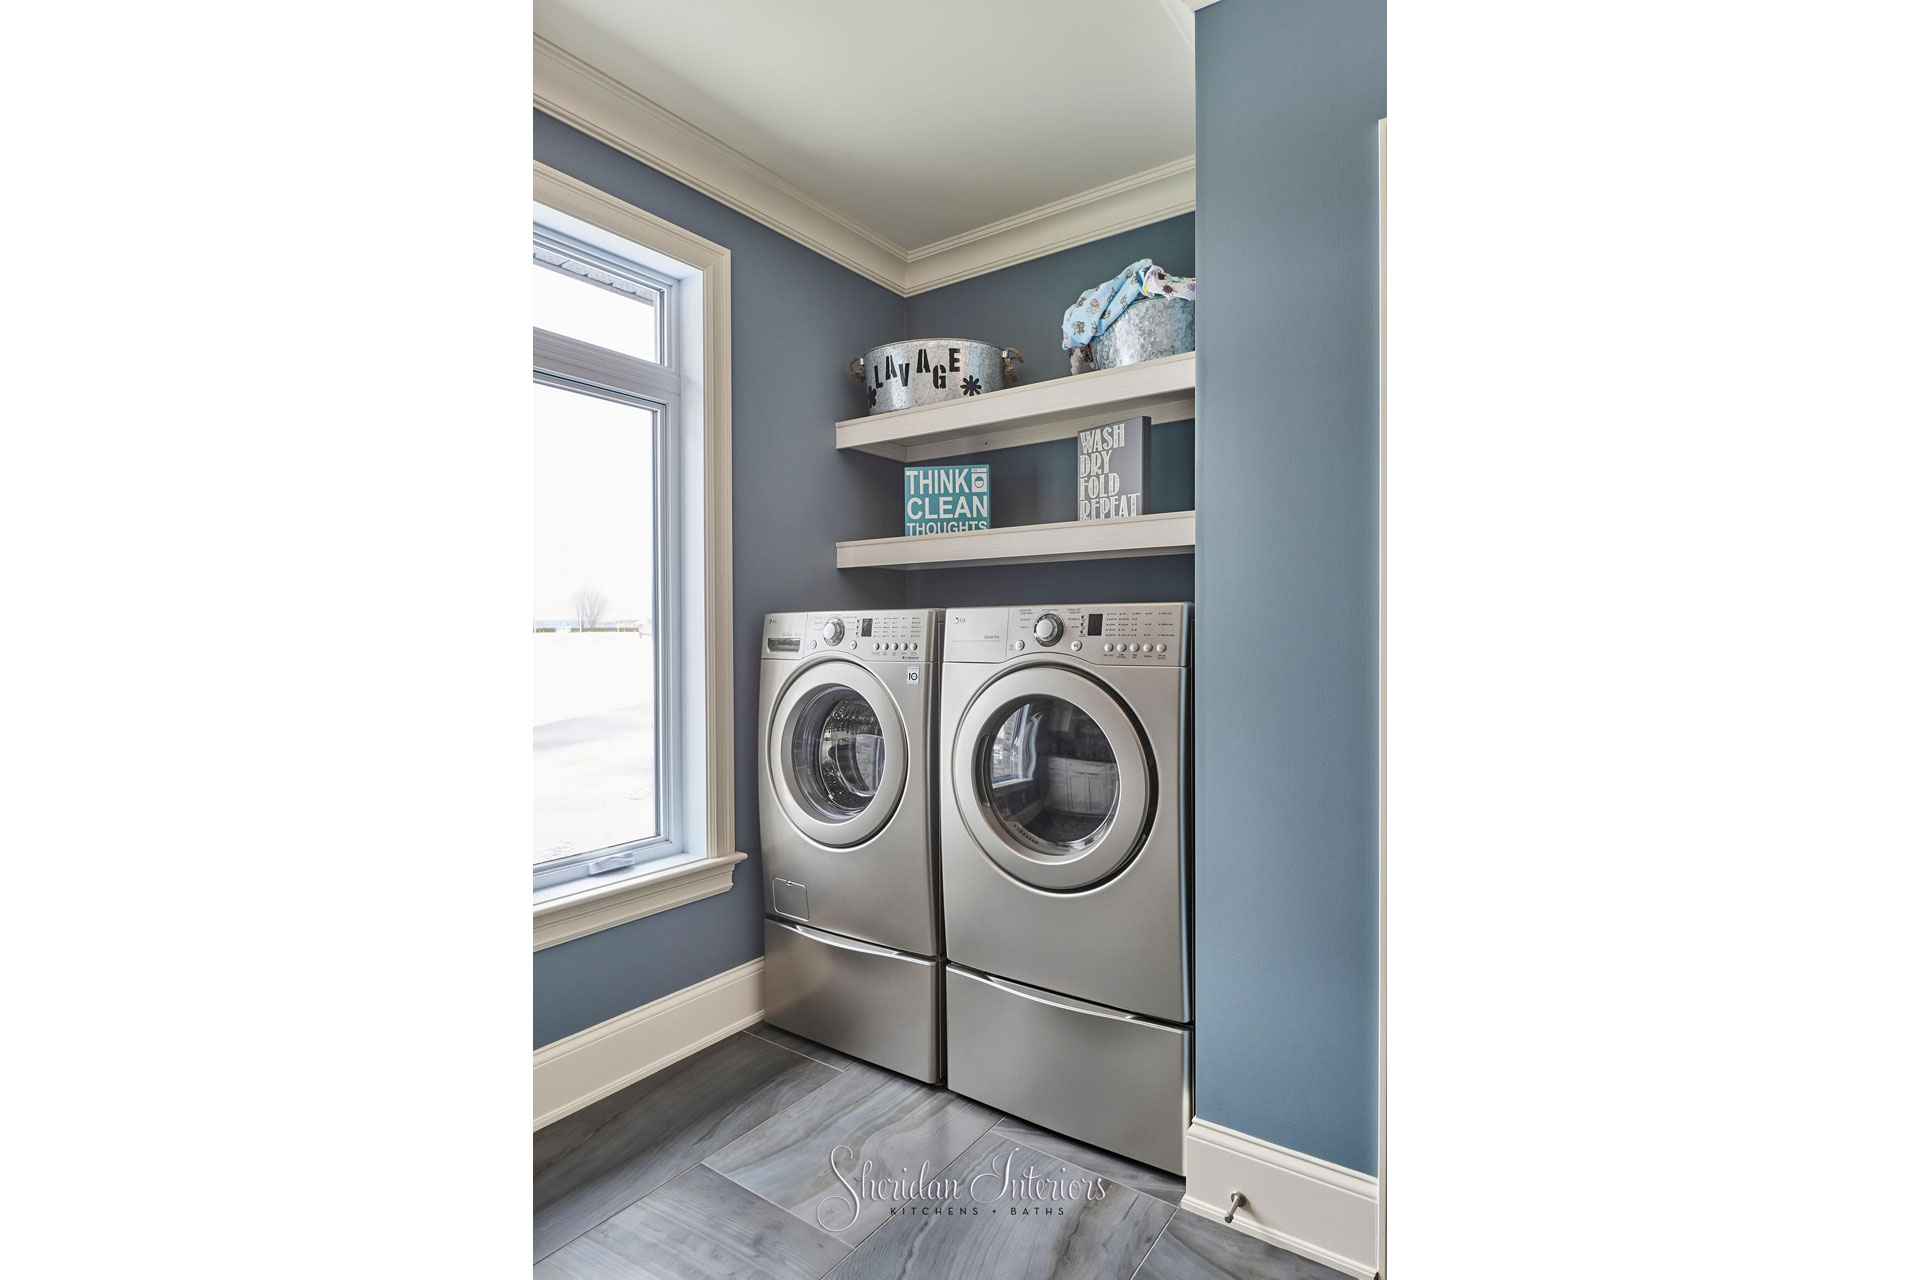 Laundry Room with Tile Floor - Sheridan Interiors